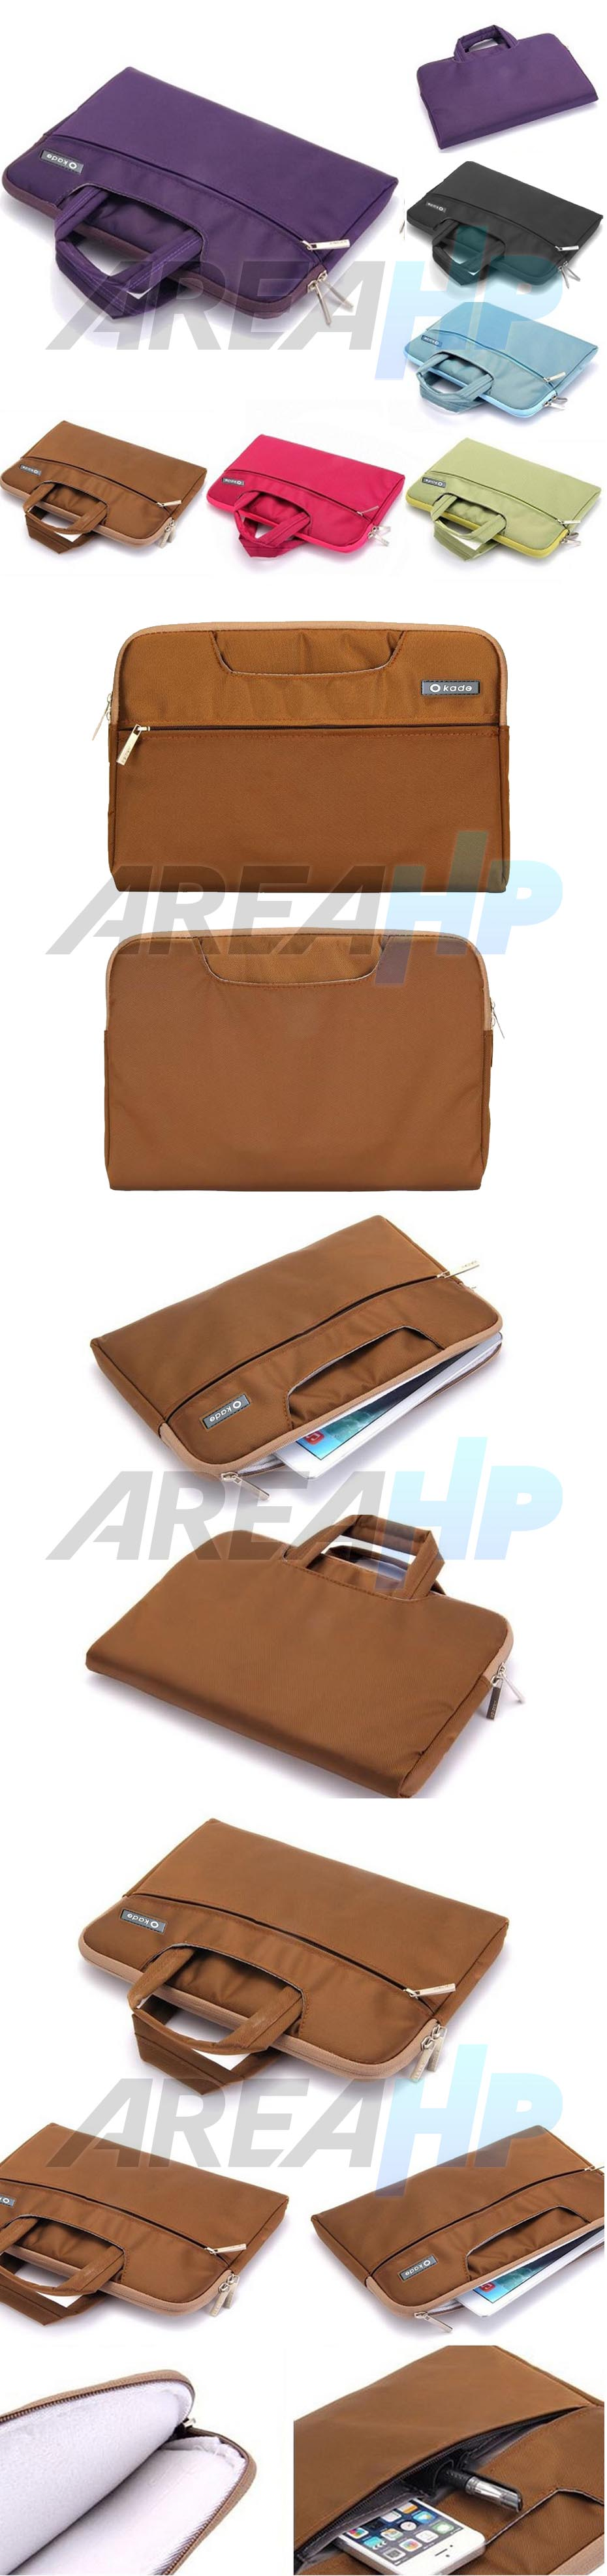 Okade Advance Bag and Case for Macbook  Laptop Overview